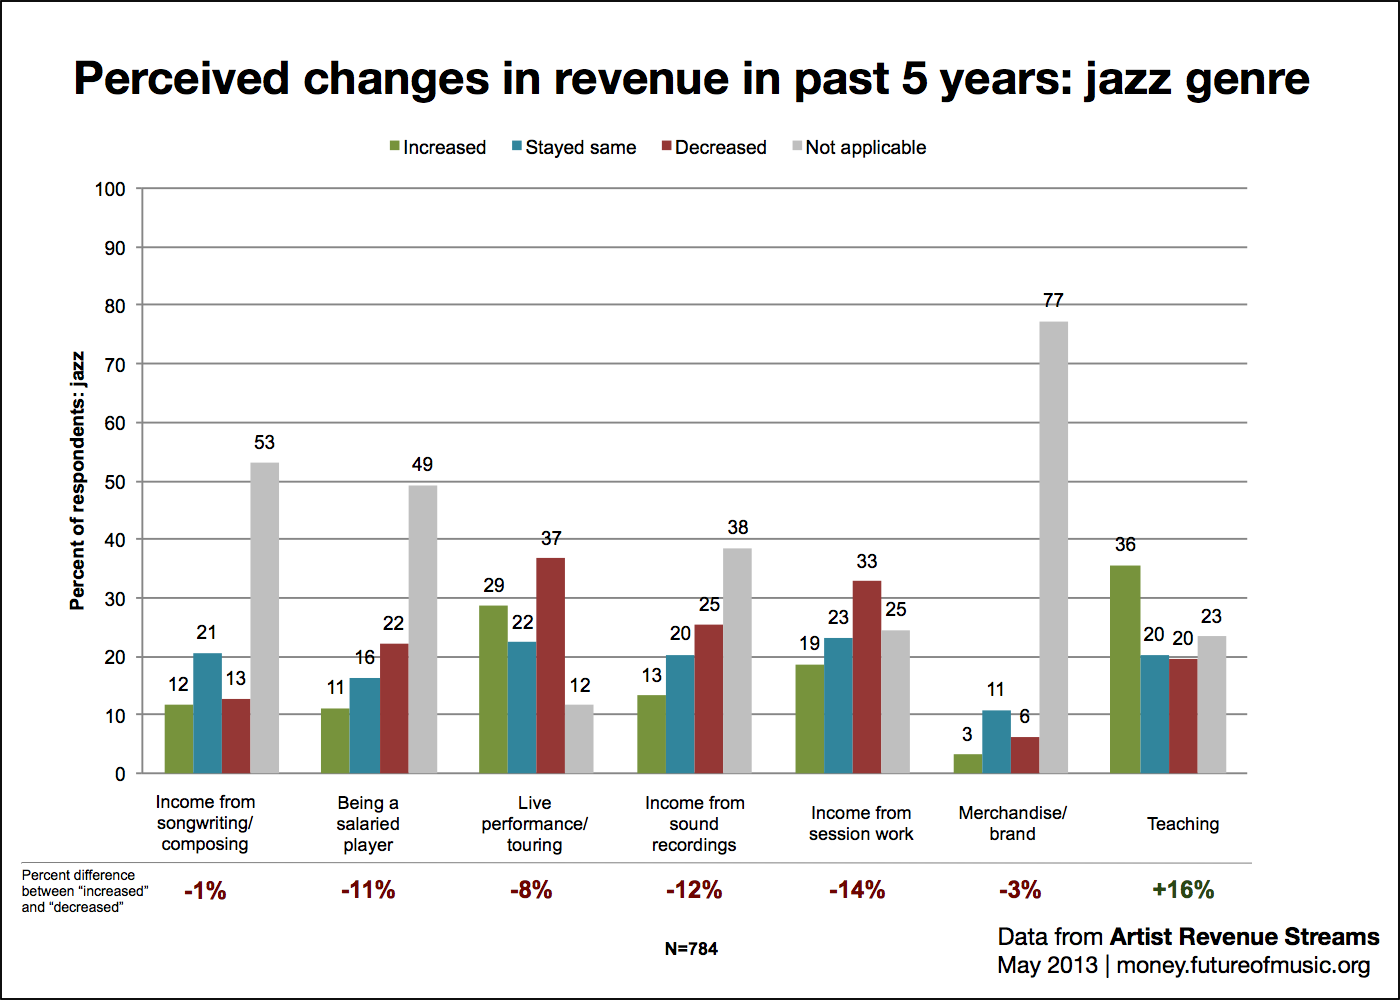 Perceived changes in revenue: jazz genre